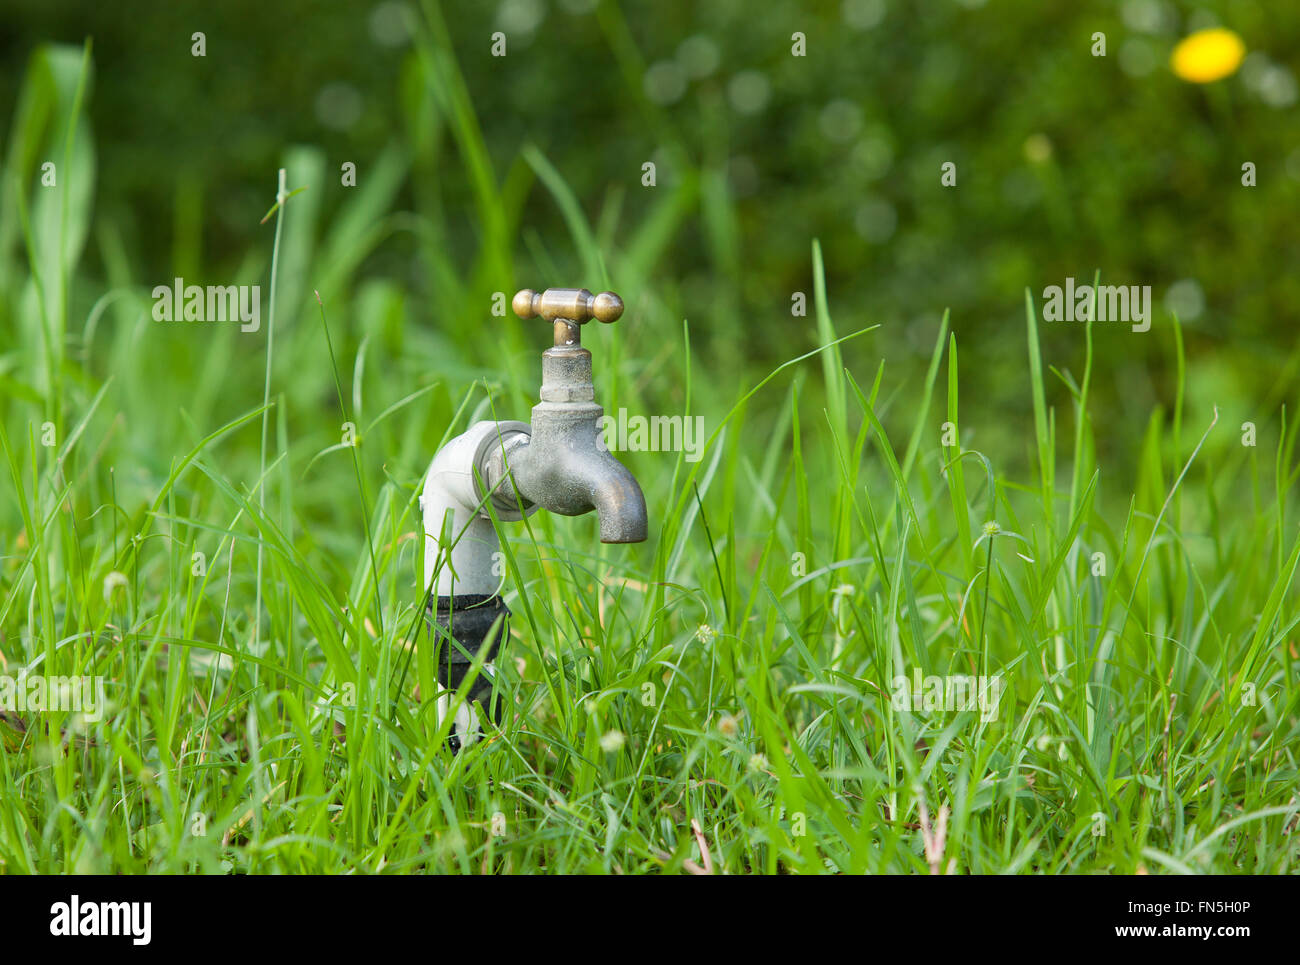 Faucet on green grass garden. No water Stock Photo: 99082726 - Alamy